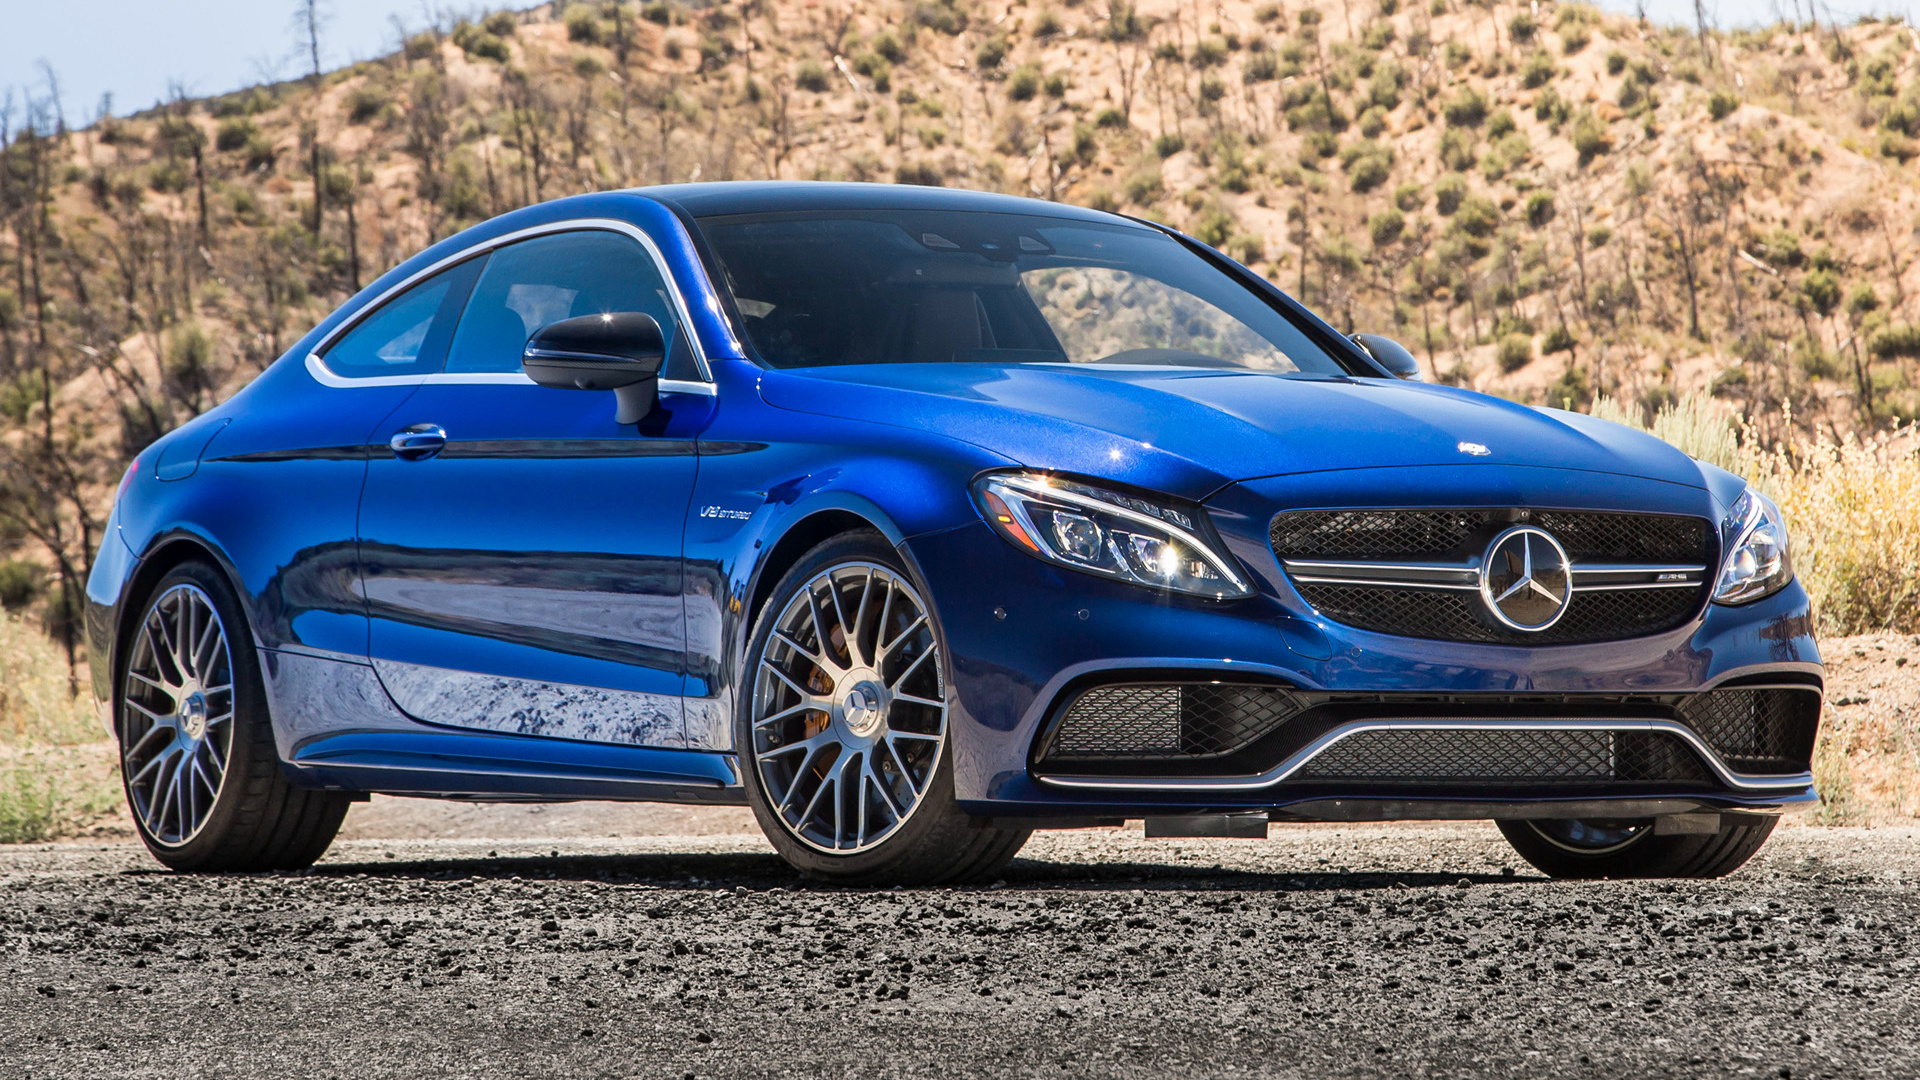 C Class Coupe 2017 >> 2017 Mercedes-AMG C 63 S Coupe (US) - Wallpapers and HD Images | Car Pixel